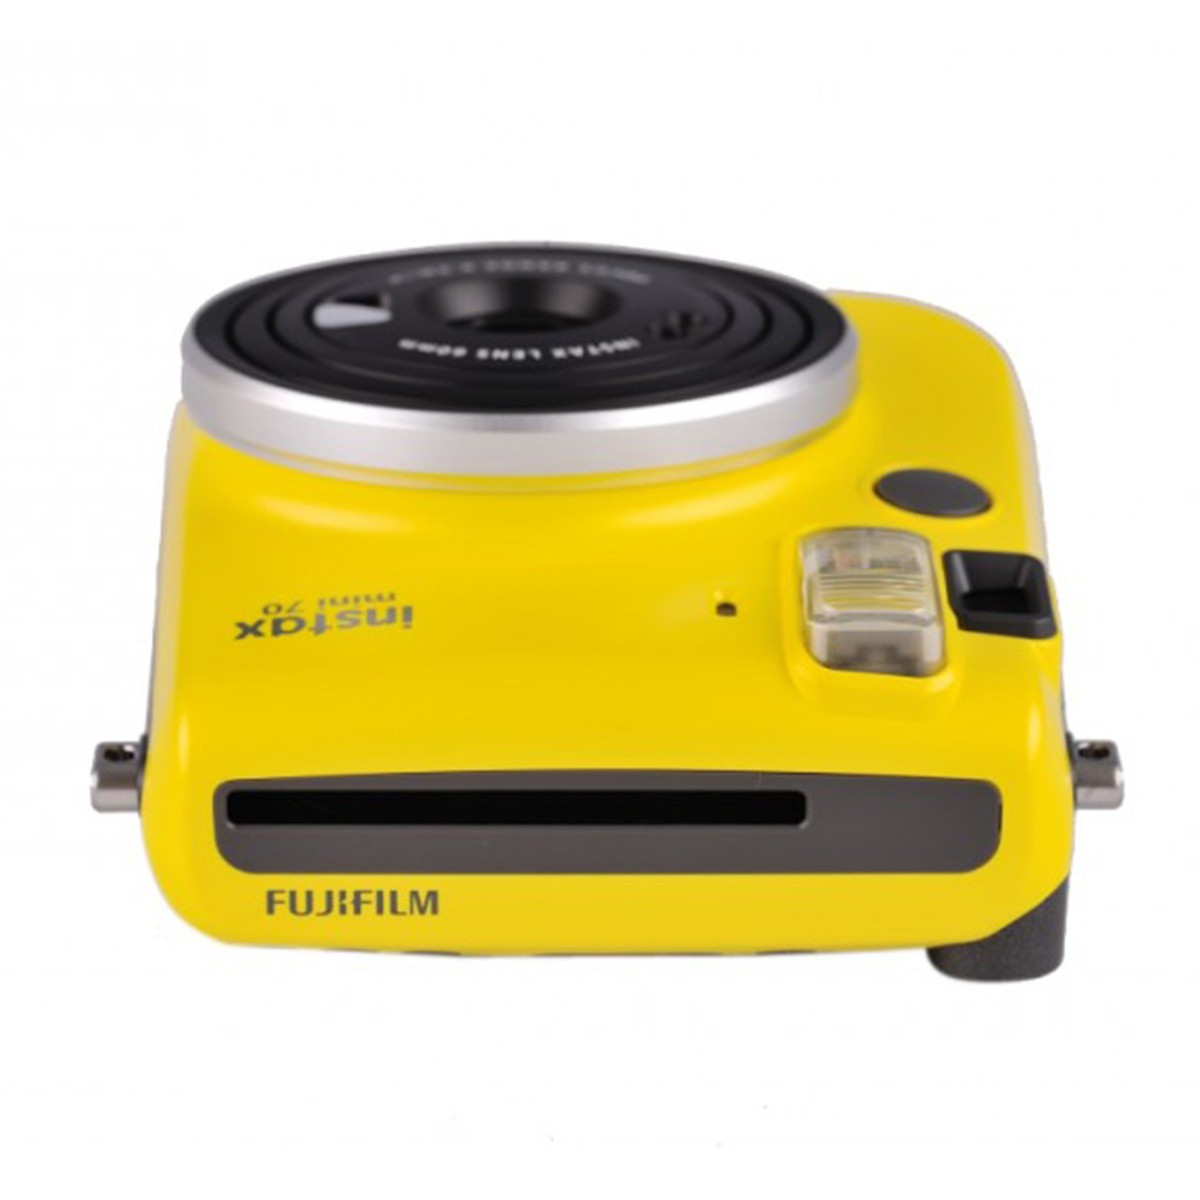 INSTAX MINI 70 Yellow